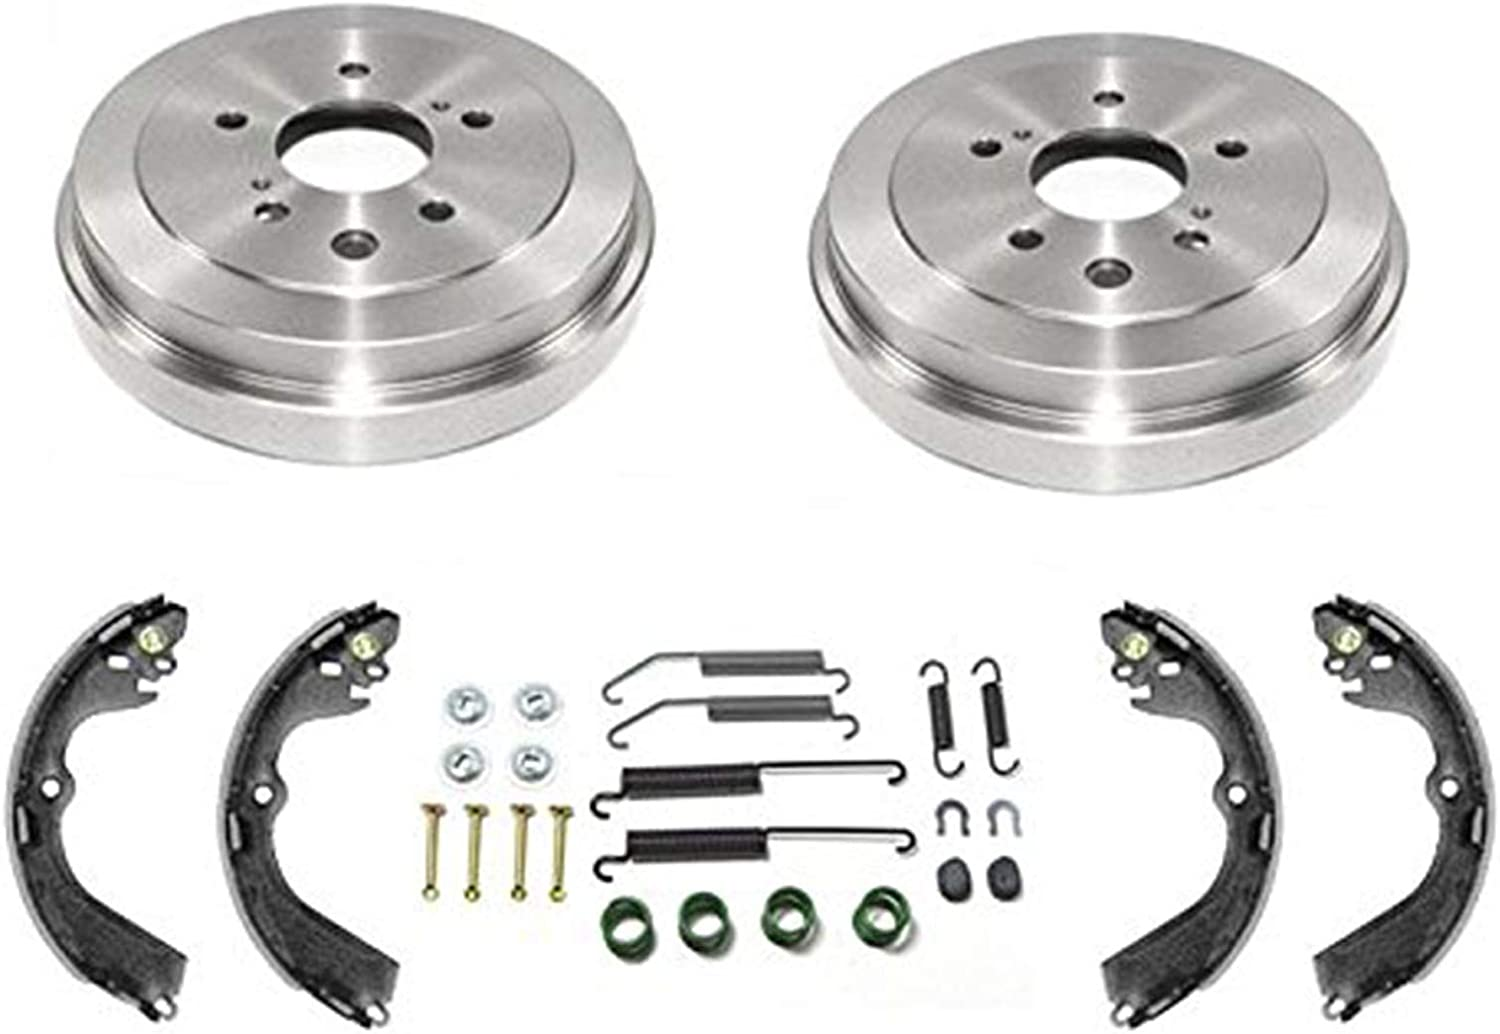 Front Ceramic Brakes For Chevrolet City Express Nissan Leaf NV200